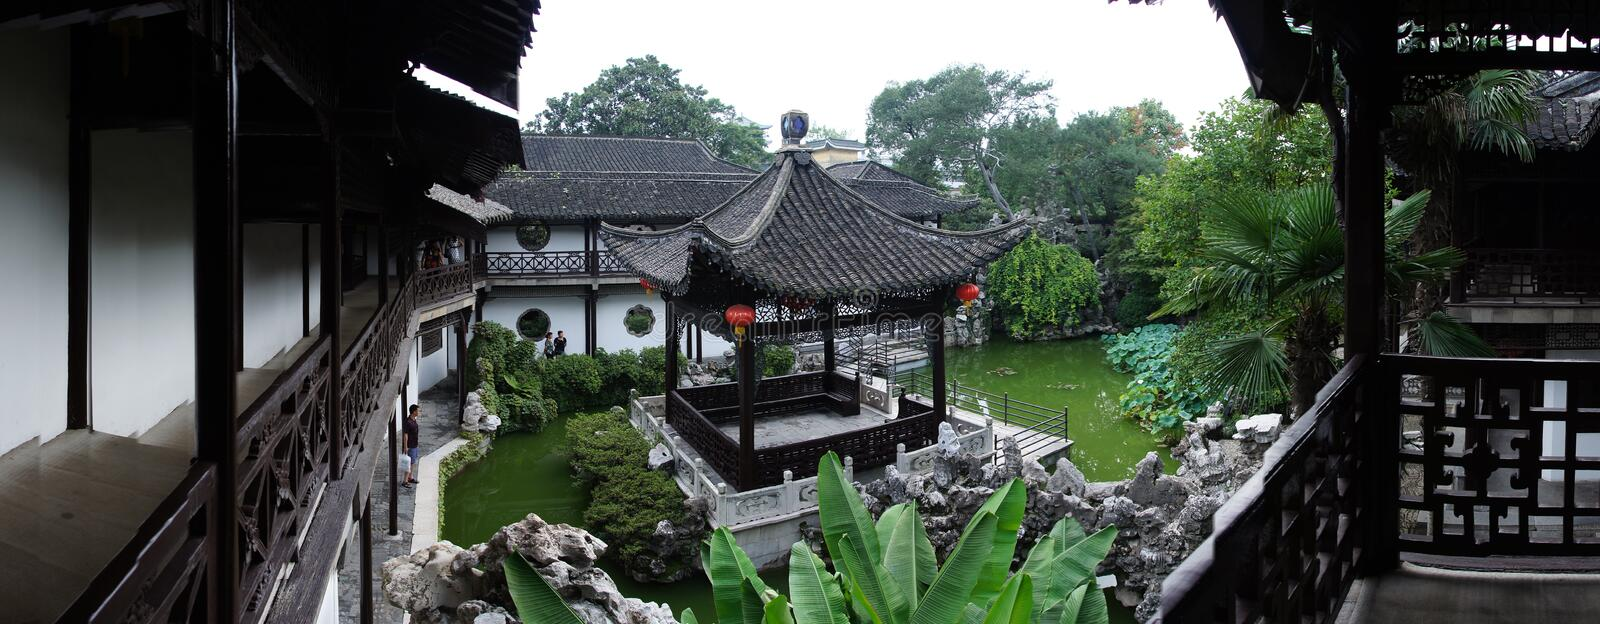 He Garden. National key cultural unit He Garden from the old town of Yangzhou, Qing Dynasty, summer royalty free stock photos